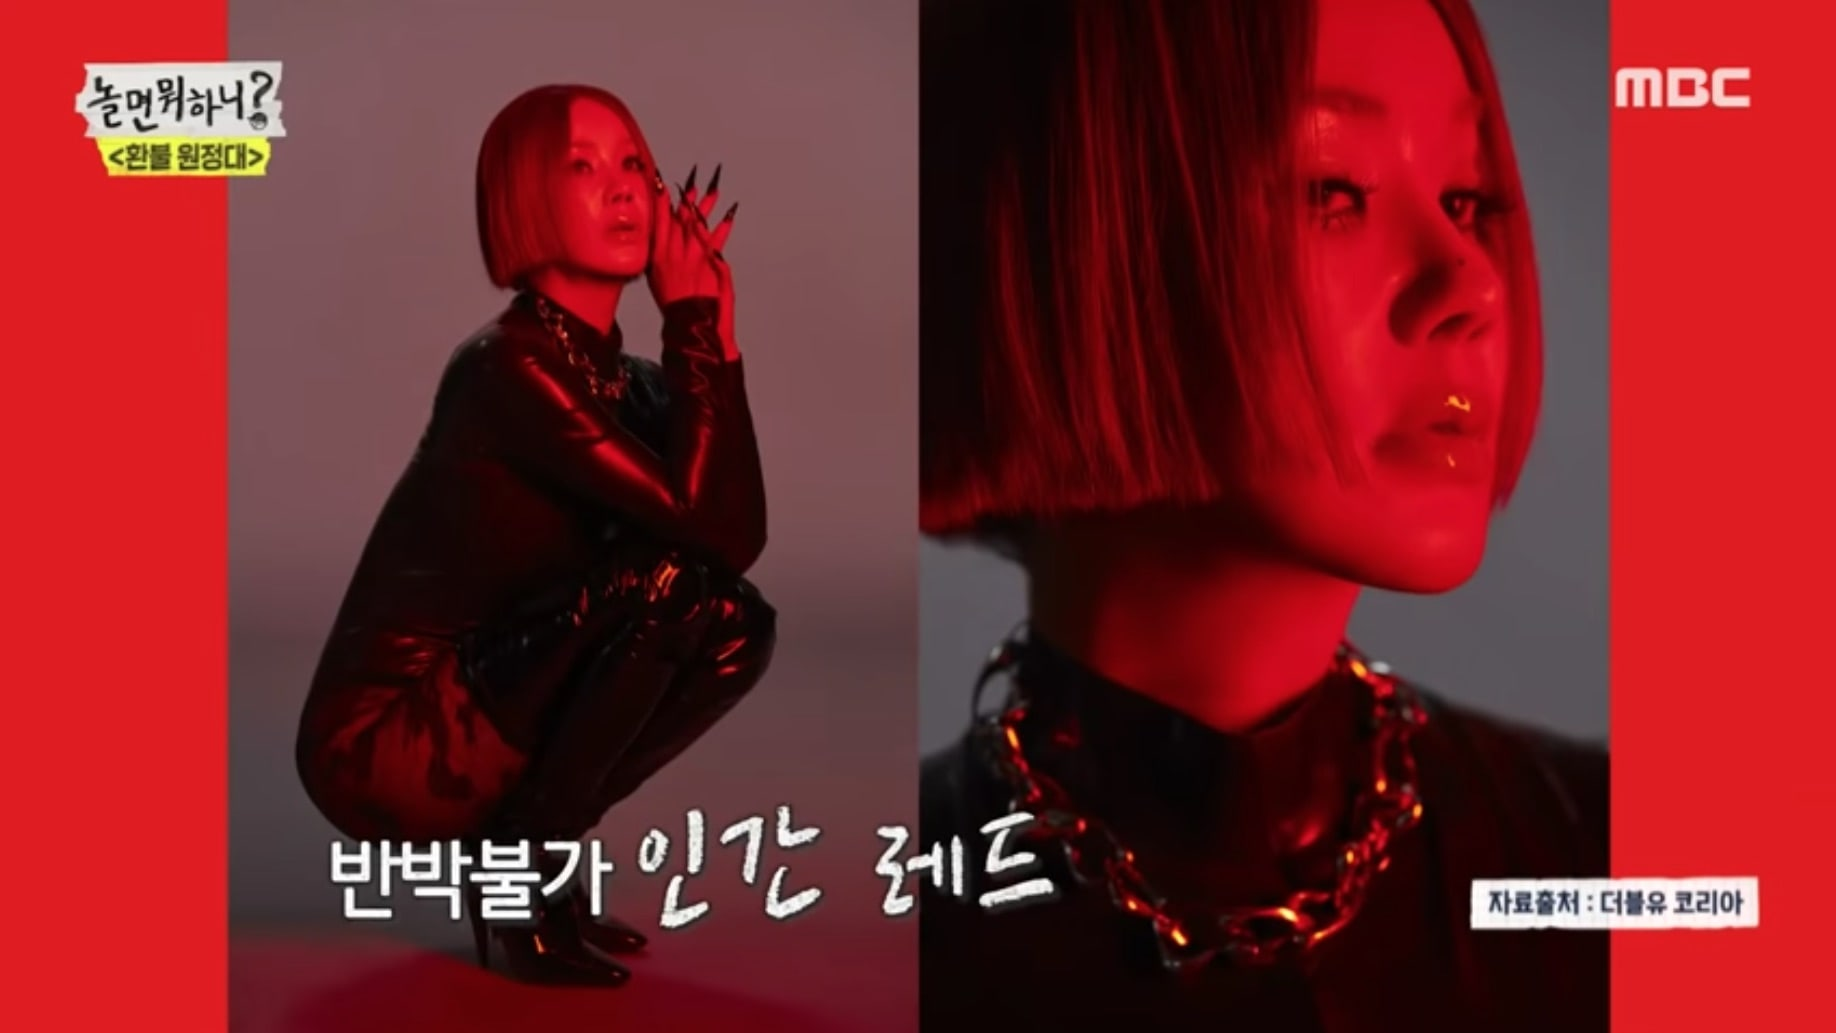 photos/uhm-jung-hwa-how-do-you-play1.jpg